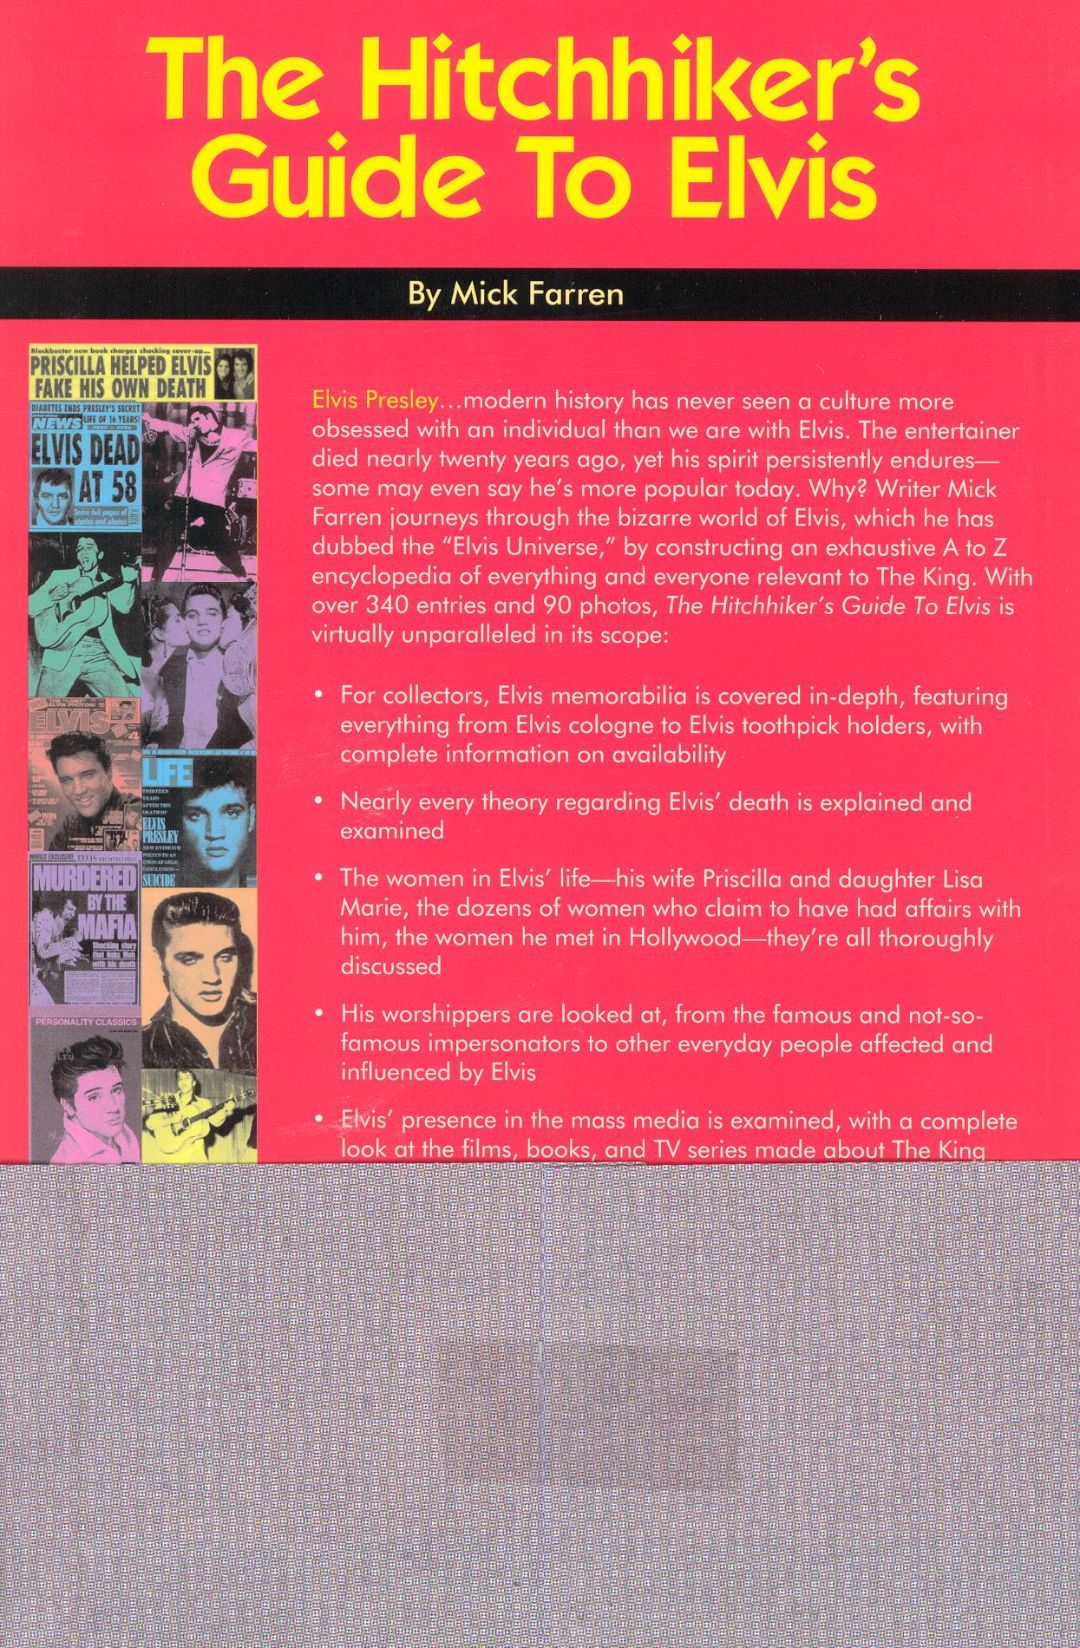 Everything About Elvis [CD & Book]